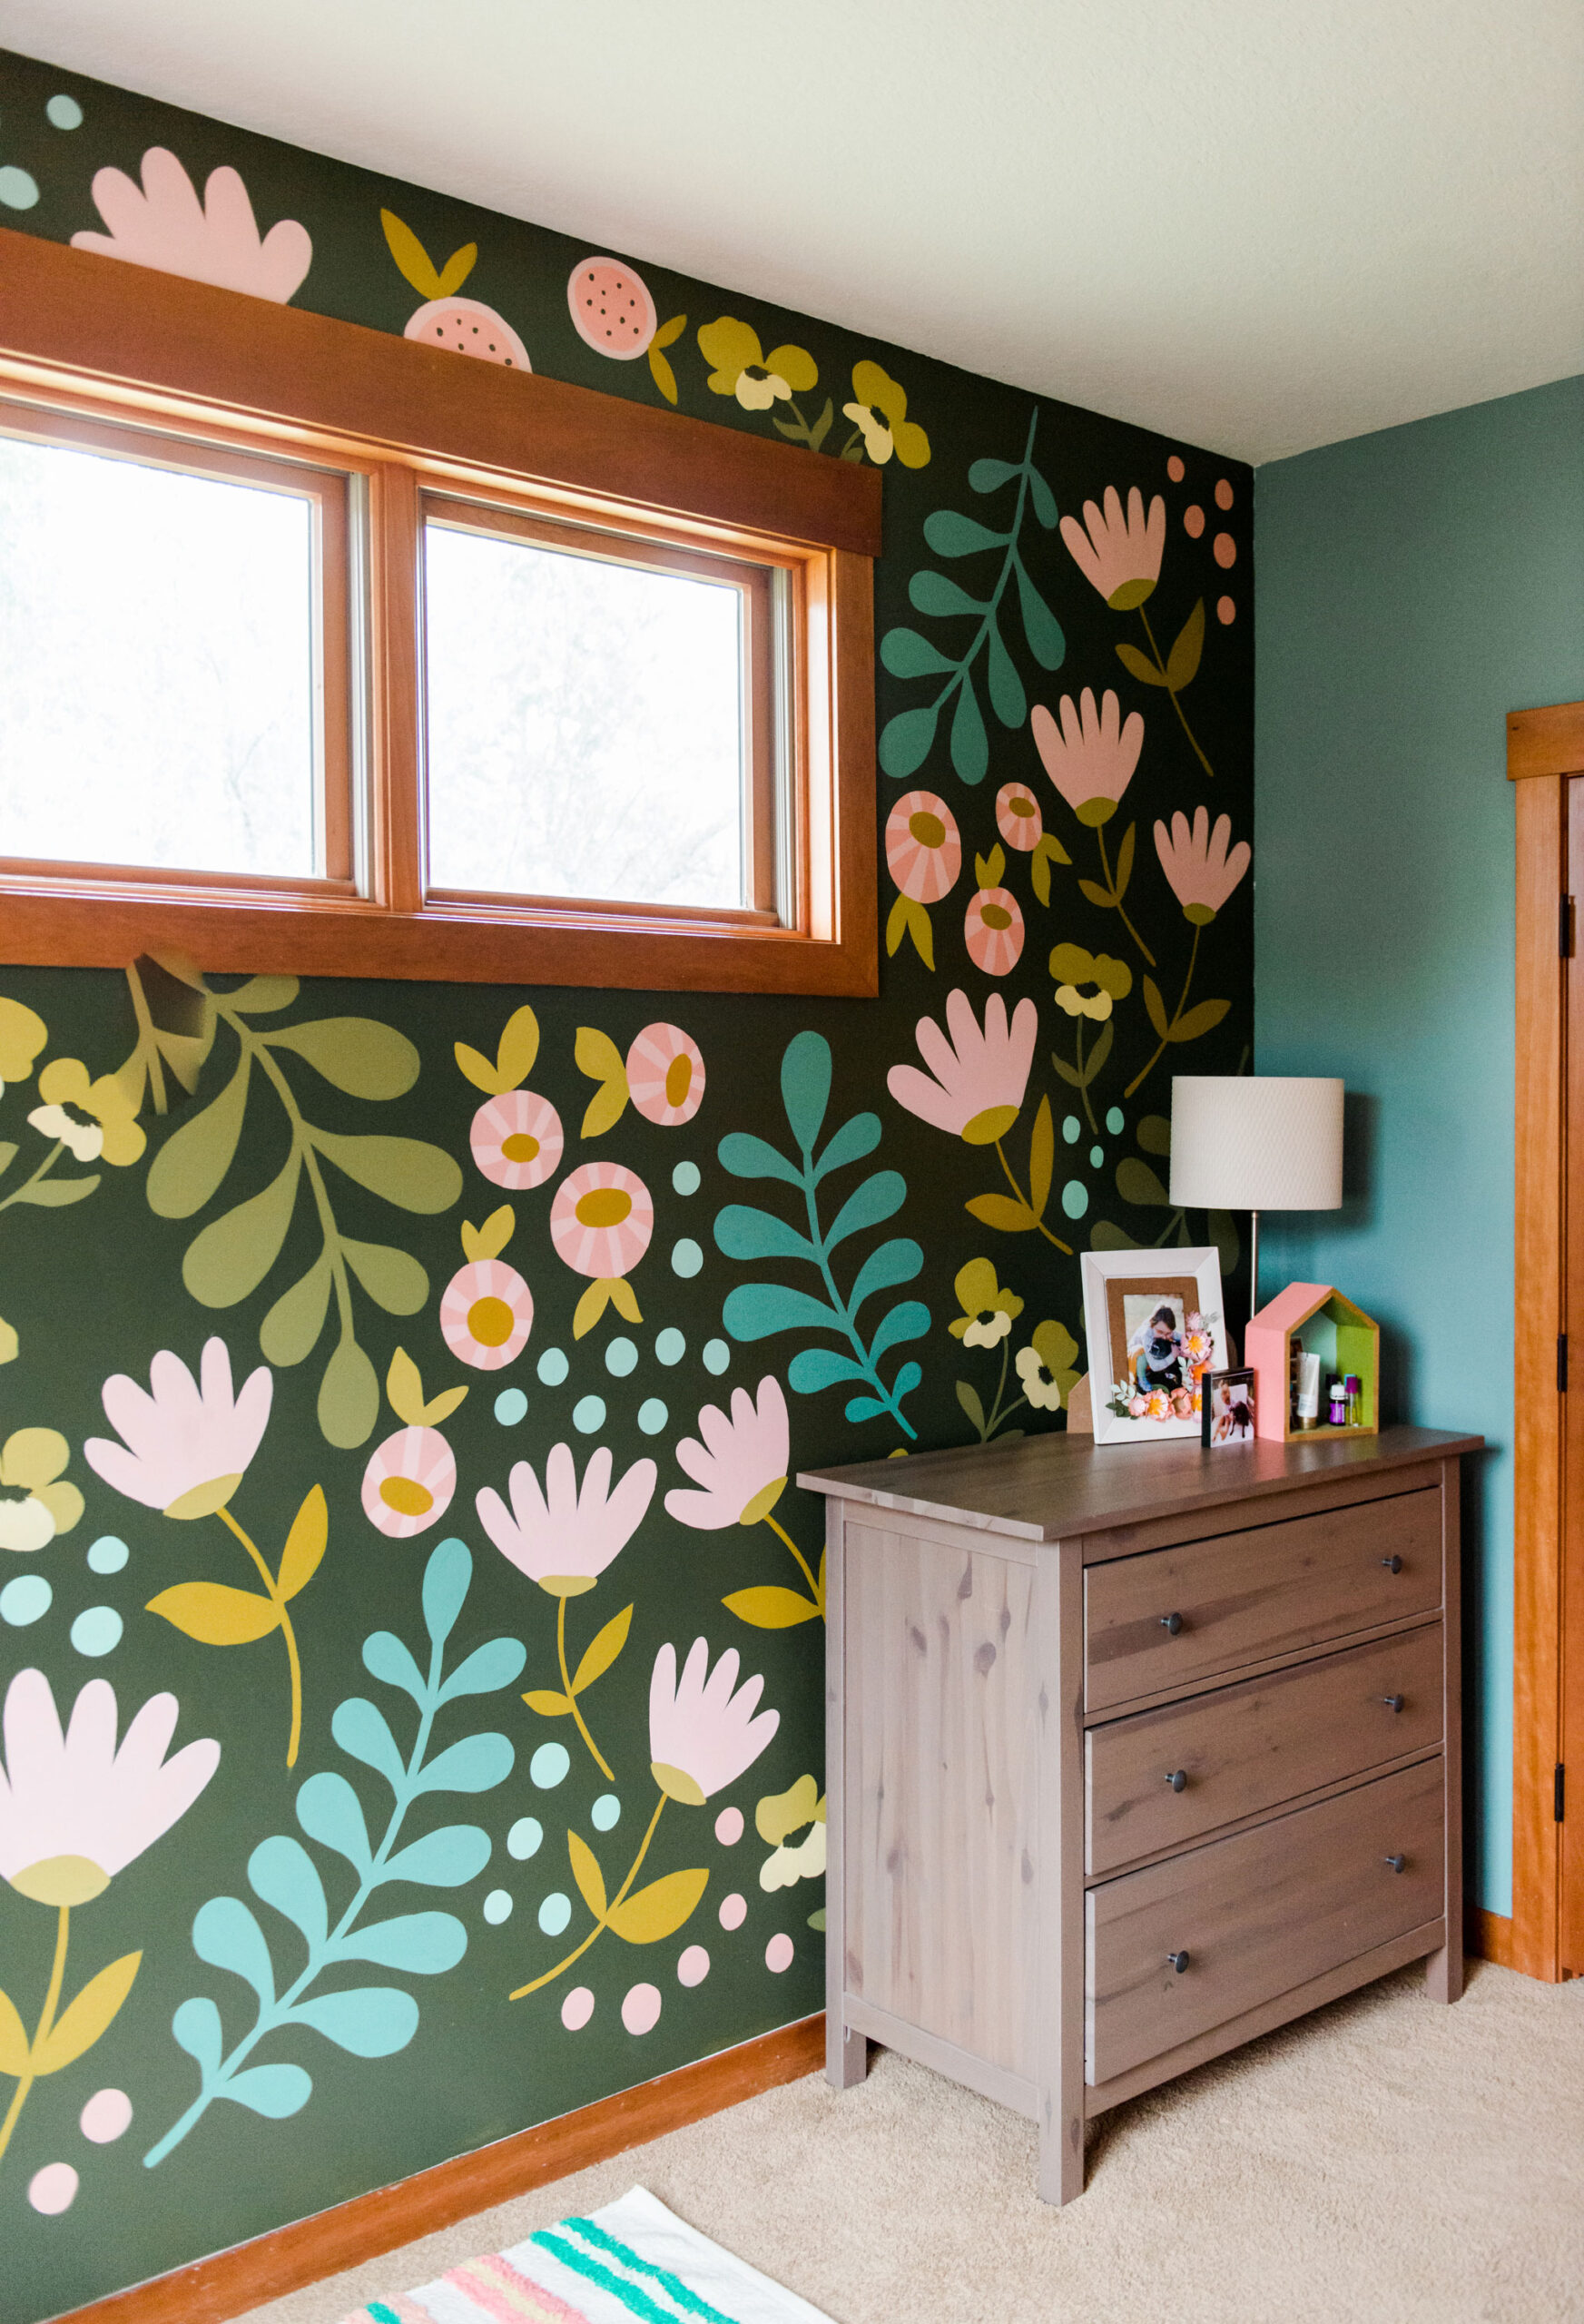 How to paint a floral wall mural, Floral painting DIY, bedroom mural, bedroom floral mural, mural for a bedroom, floral bedroom mural